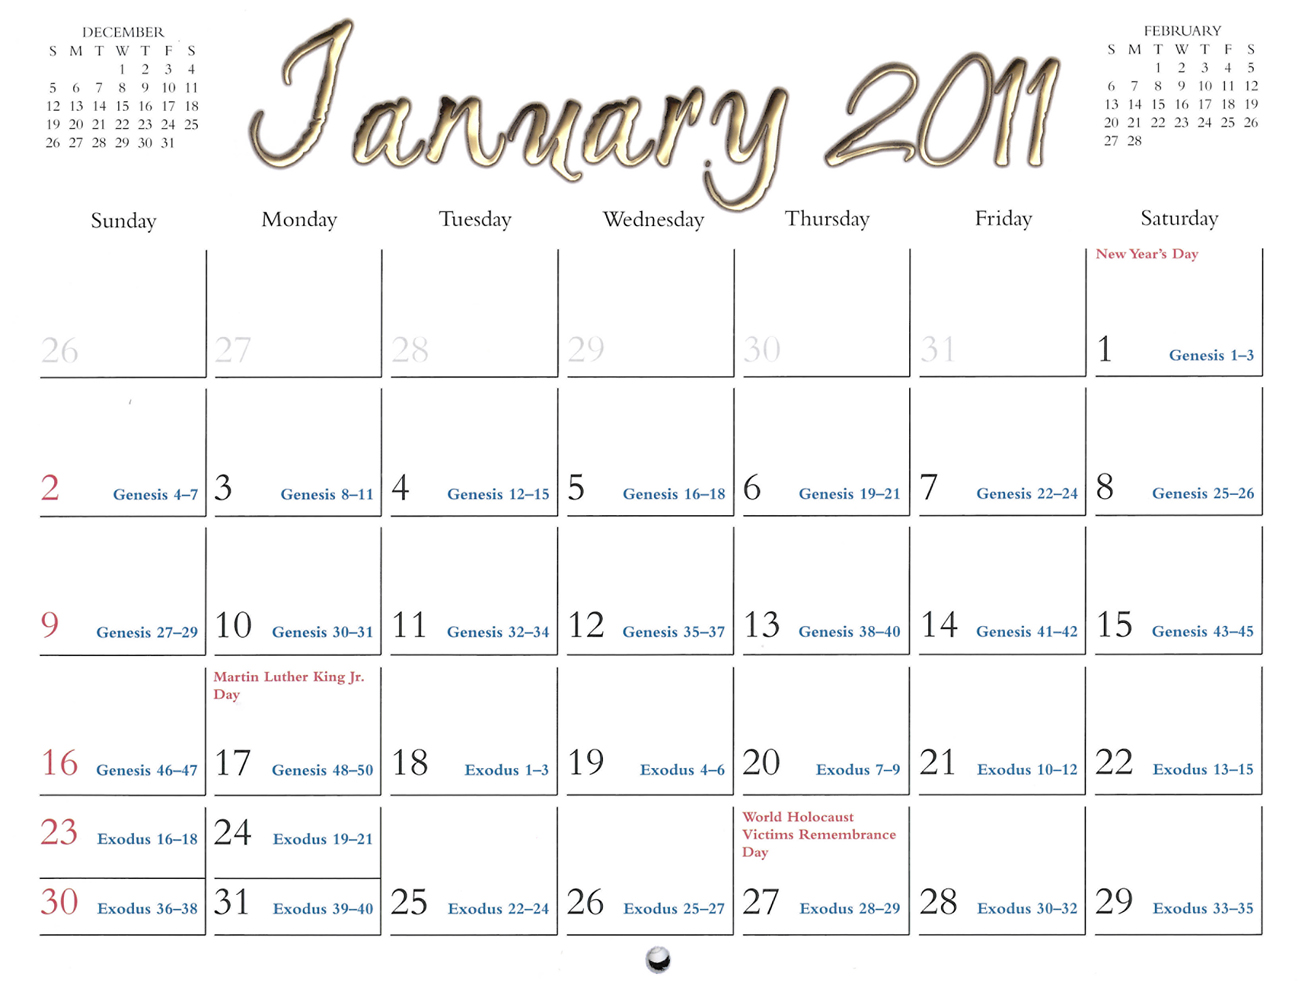 2011 Prophecy Calendar: January - Prophecies of Moses